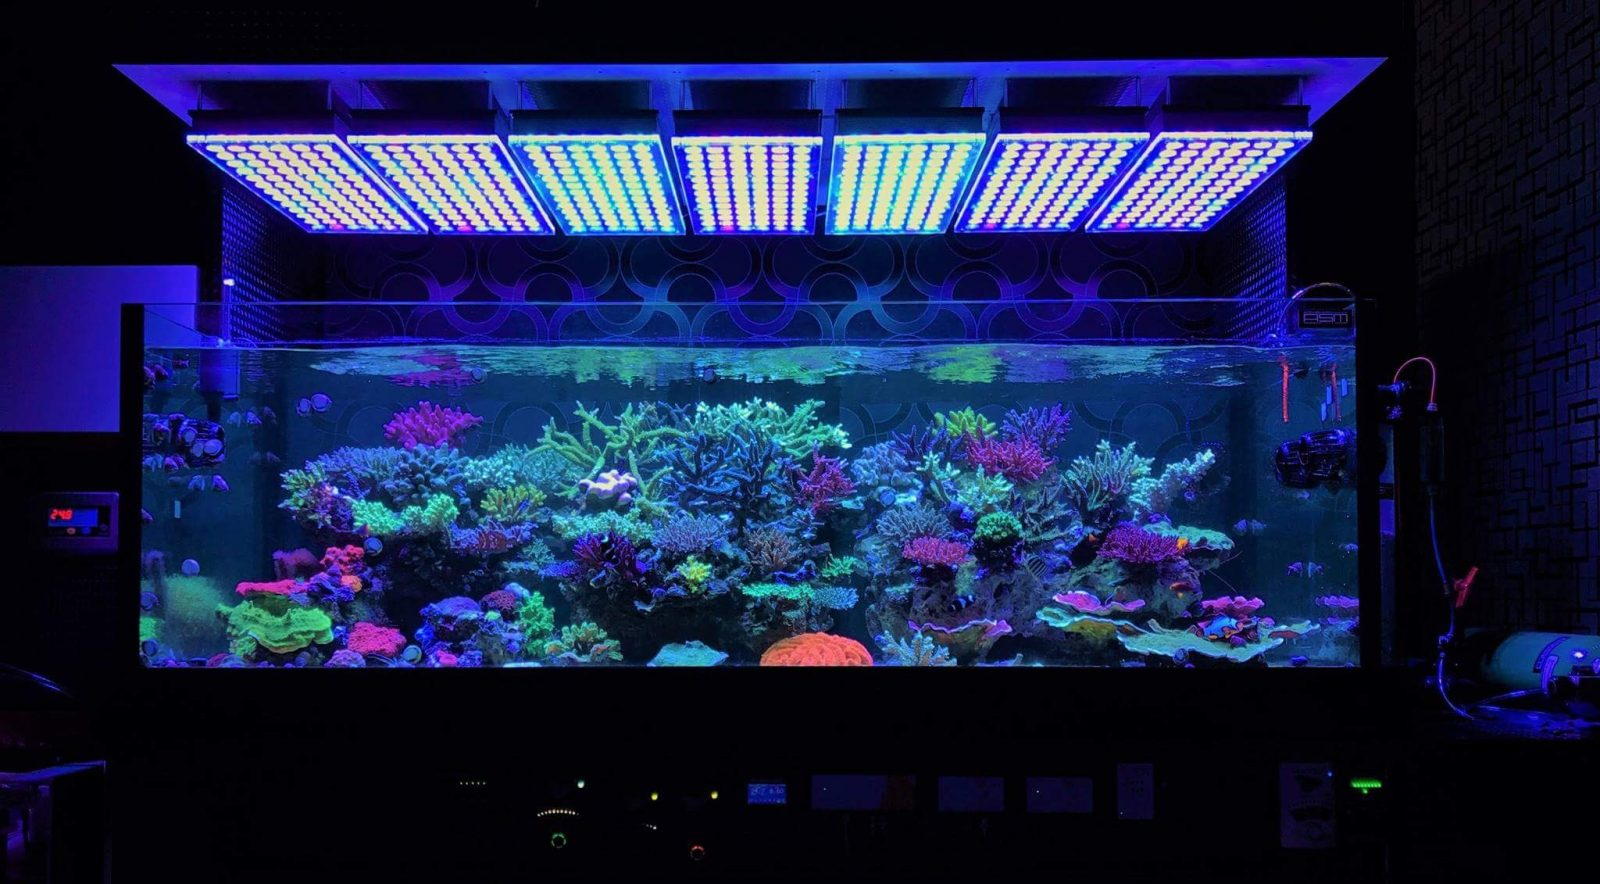 fantastiska-Reef-akvarium-LED-ljus